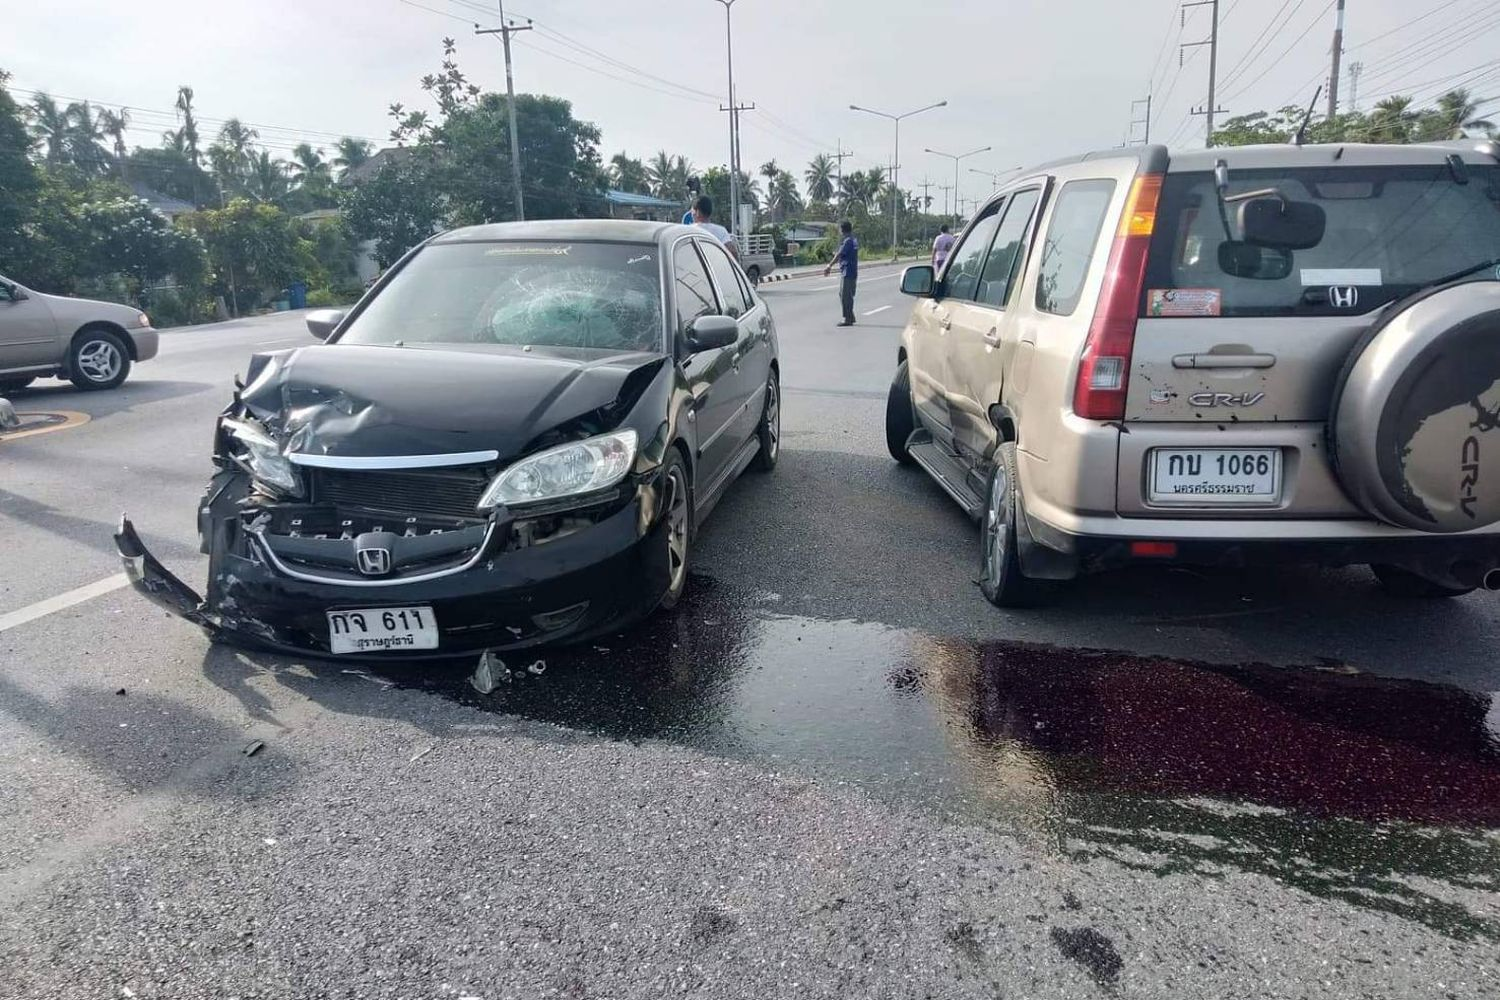 The two cars involved in a crash in Muang district, Nakhon Si Thammarat province, at noon on Monday which killed a 32-month-old baby girl. (Photo supplied by Nujaree Raekrun)